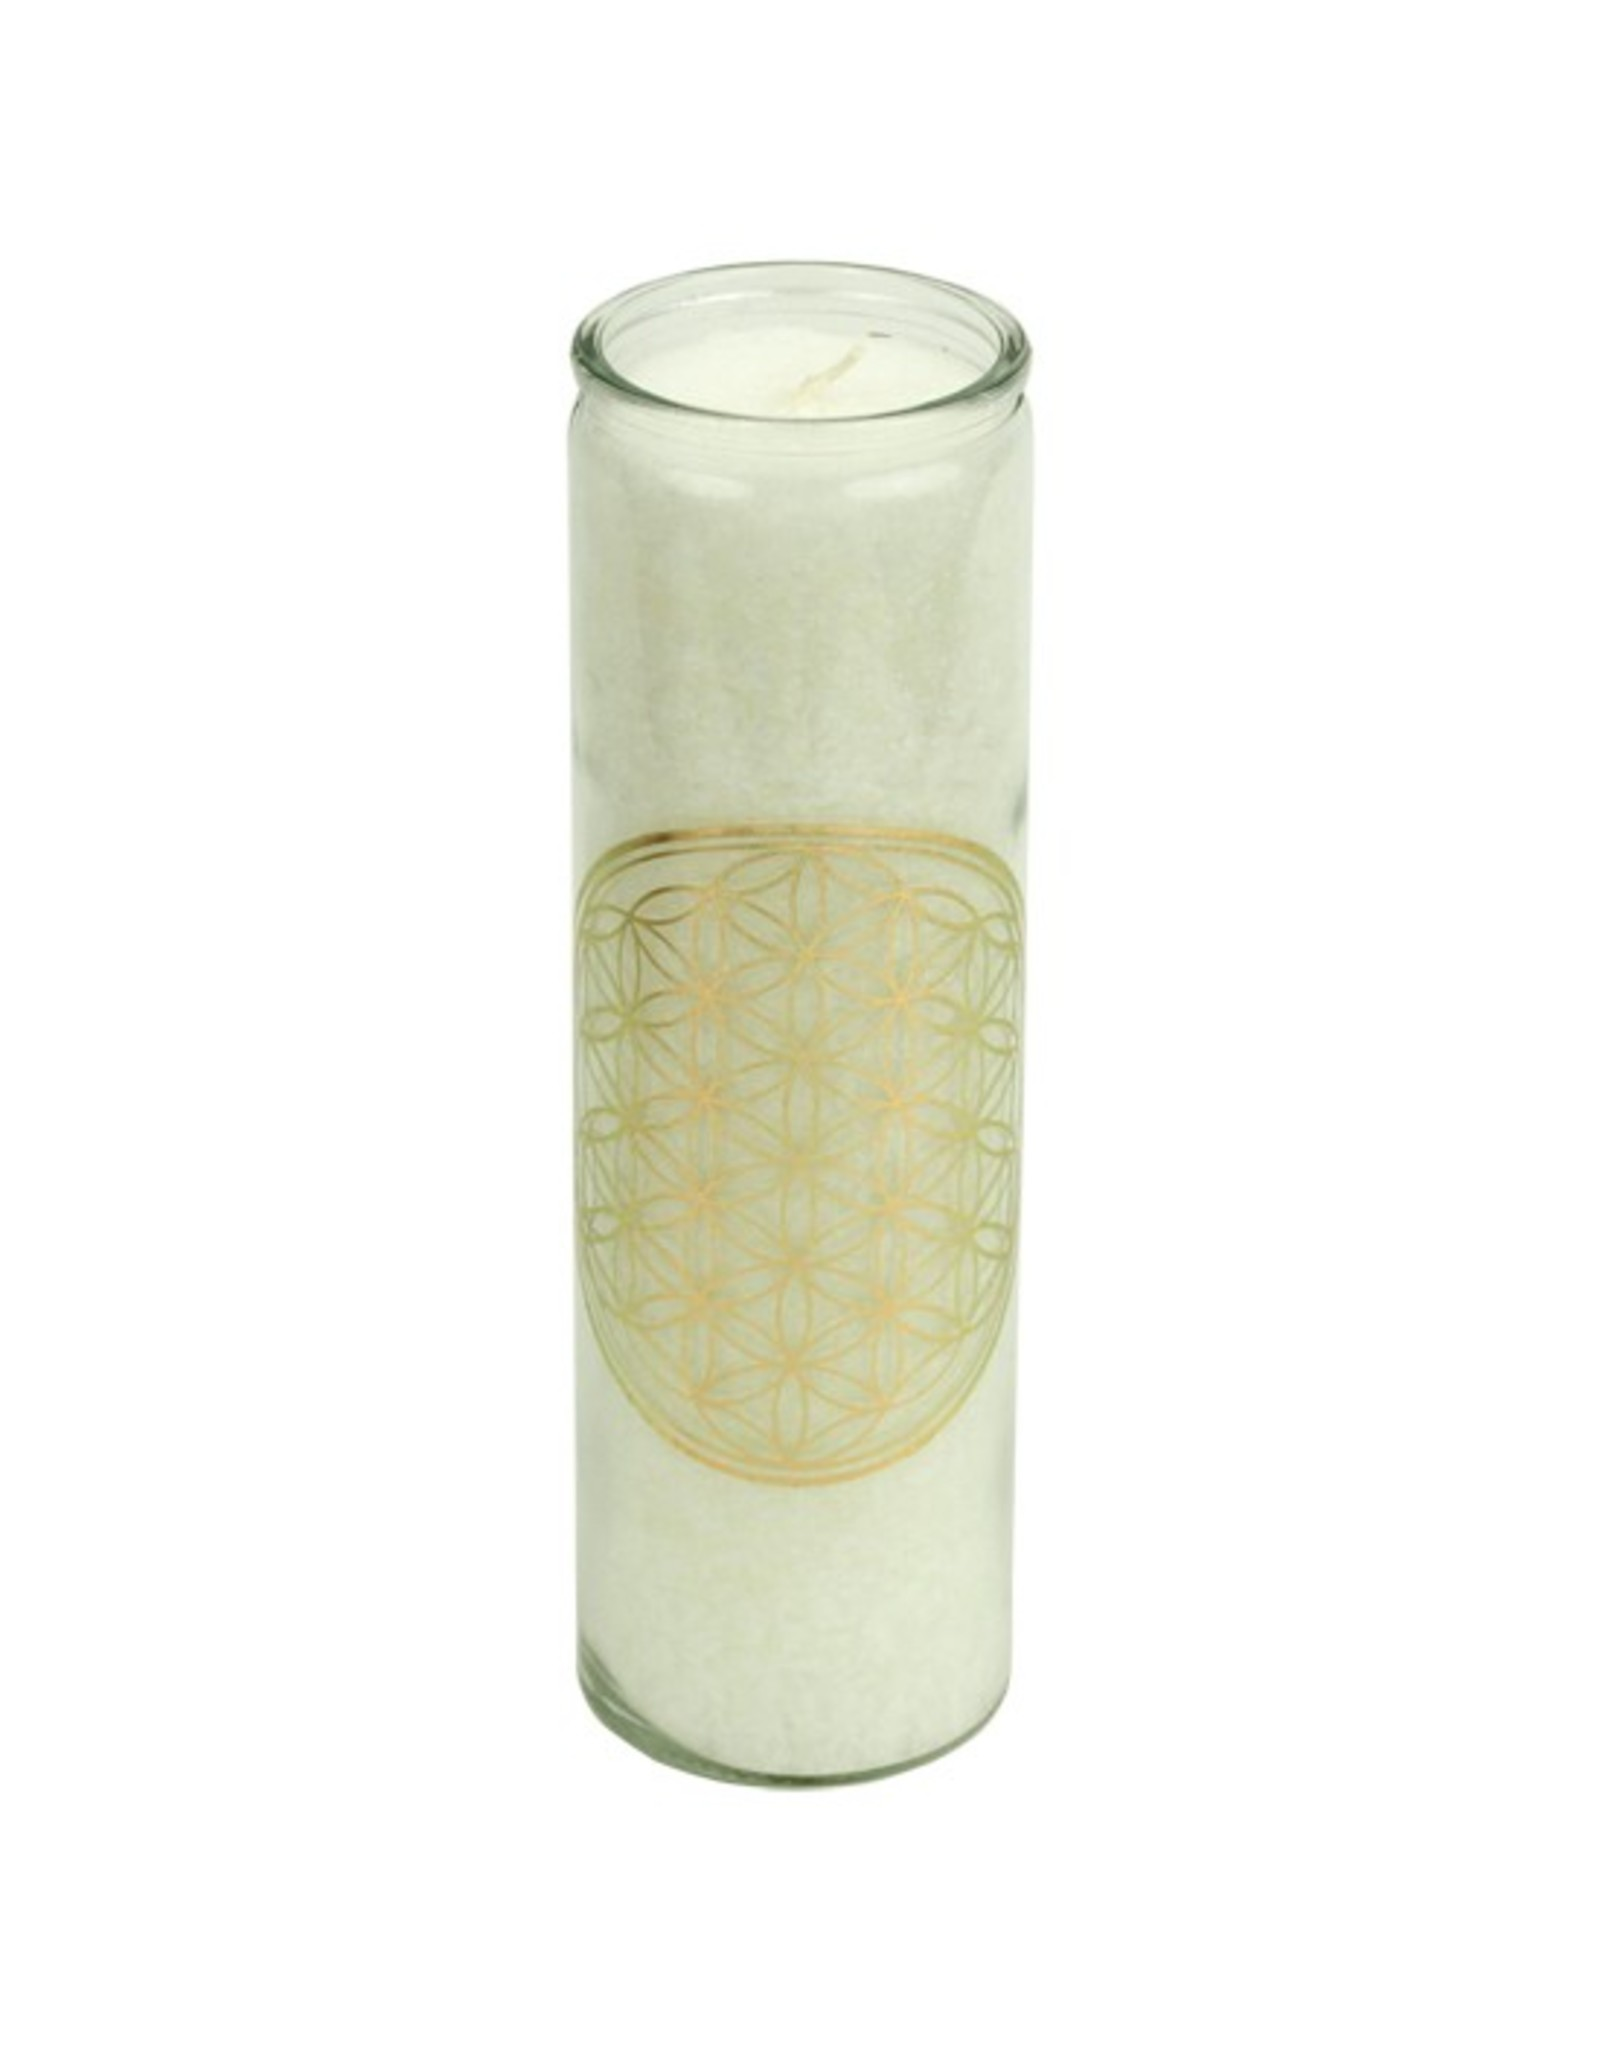 Scented candle Flower of life